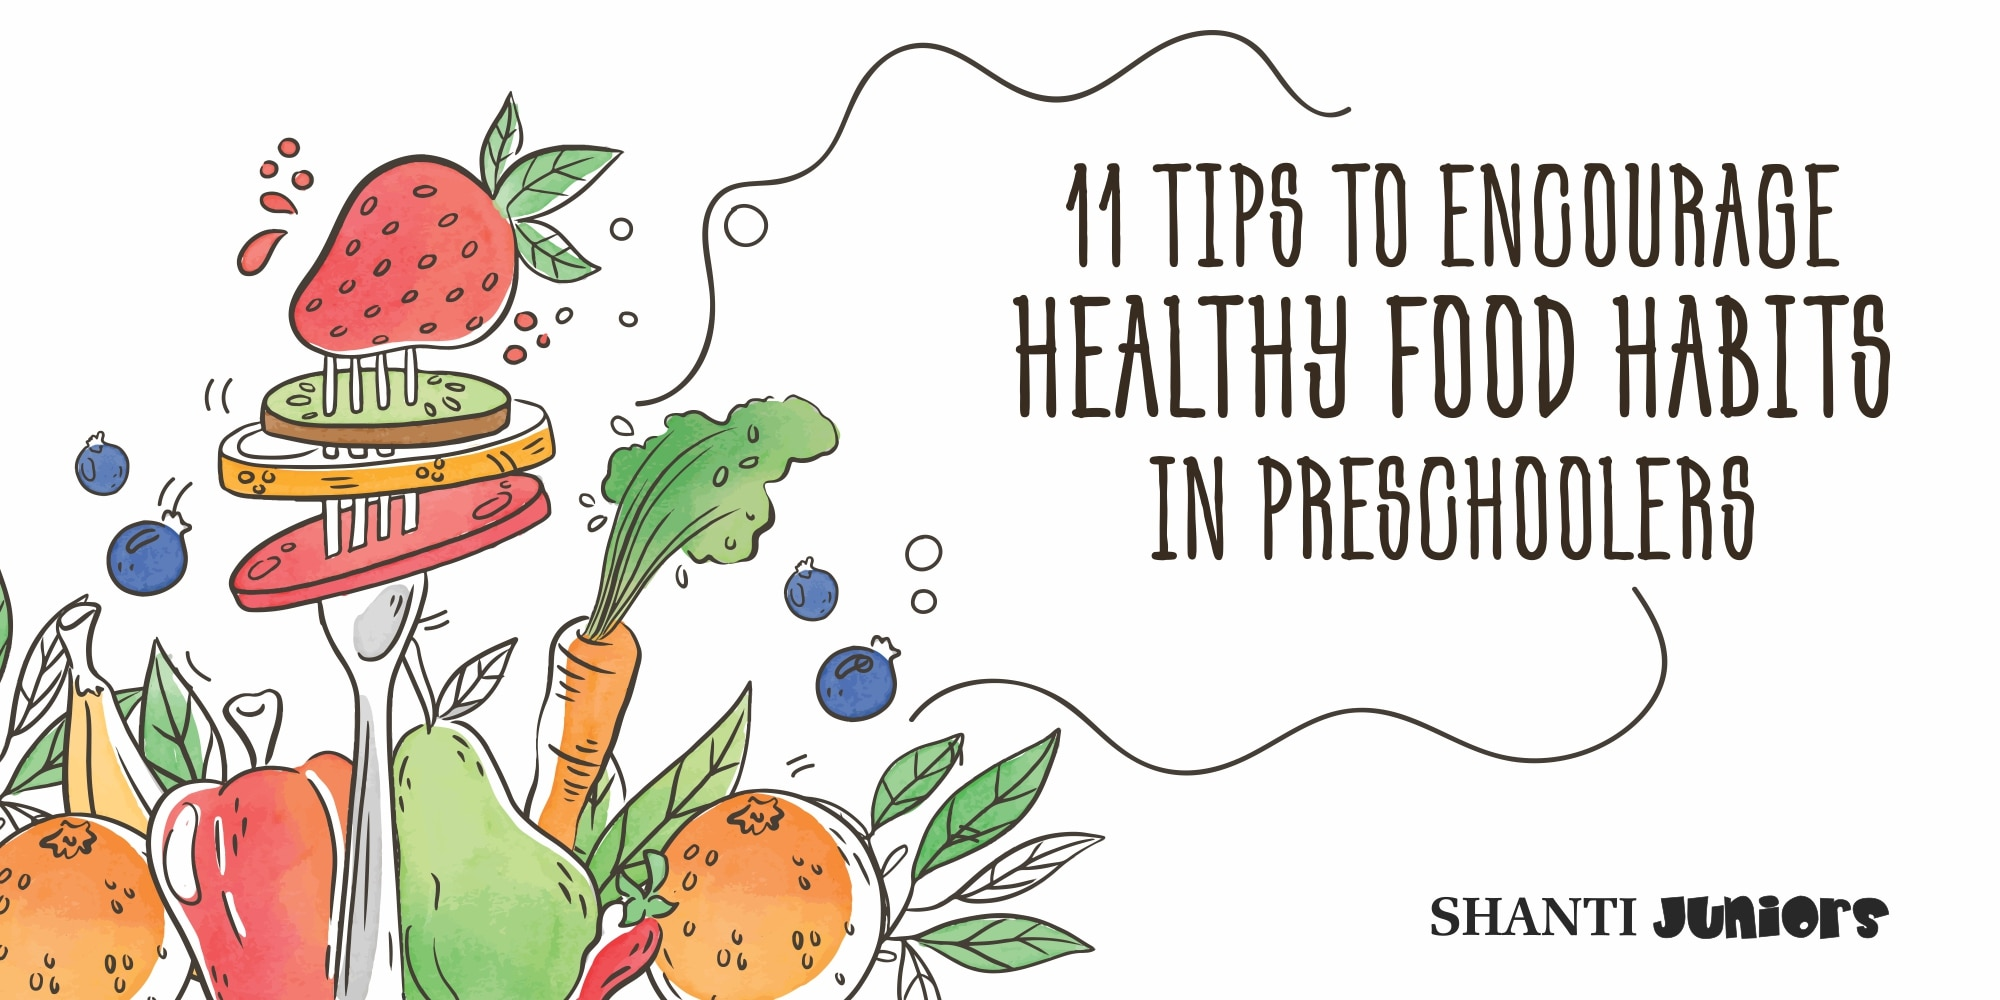 11 Tips to Encourage Healthy Food Habits in Preschoolers